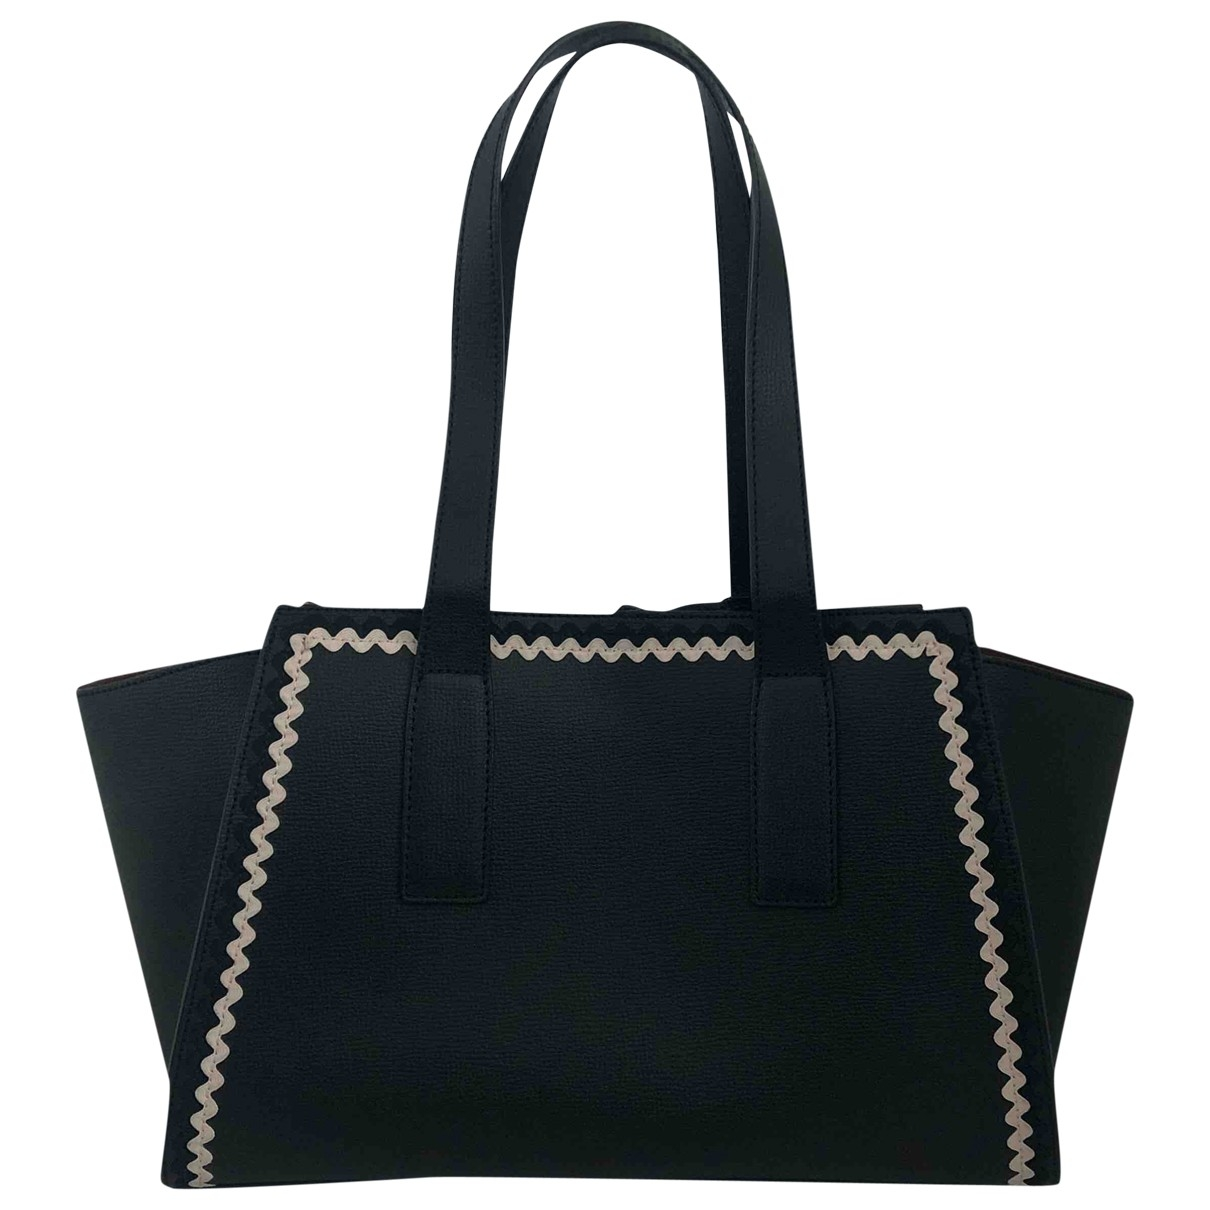 Loeffler Randall \N Black Leather handbag for Women \N